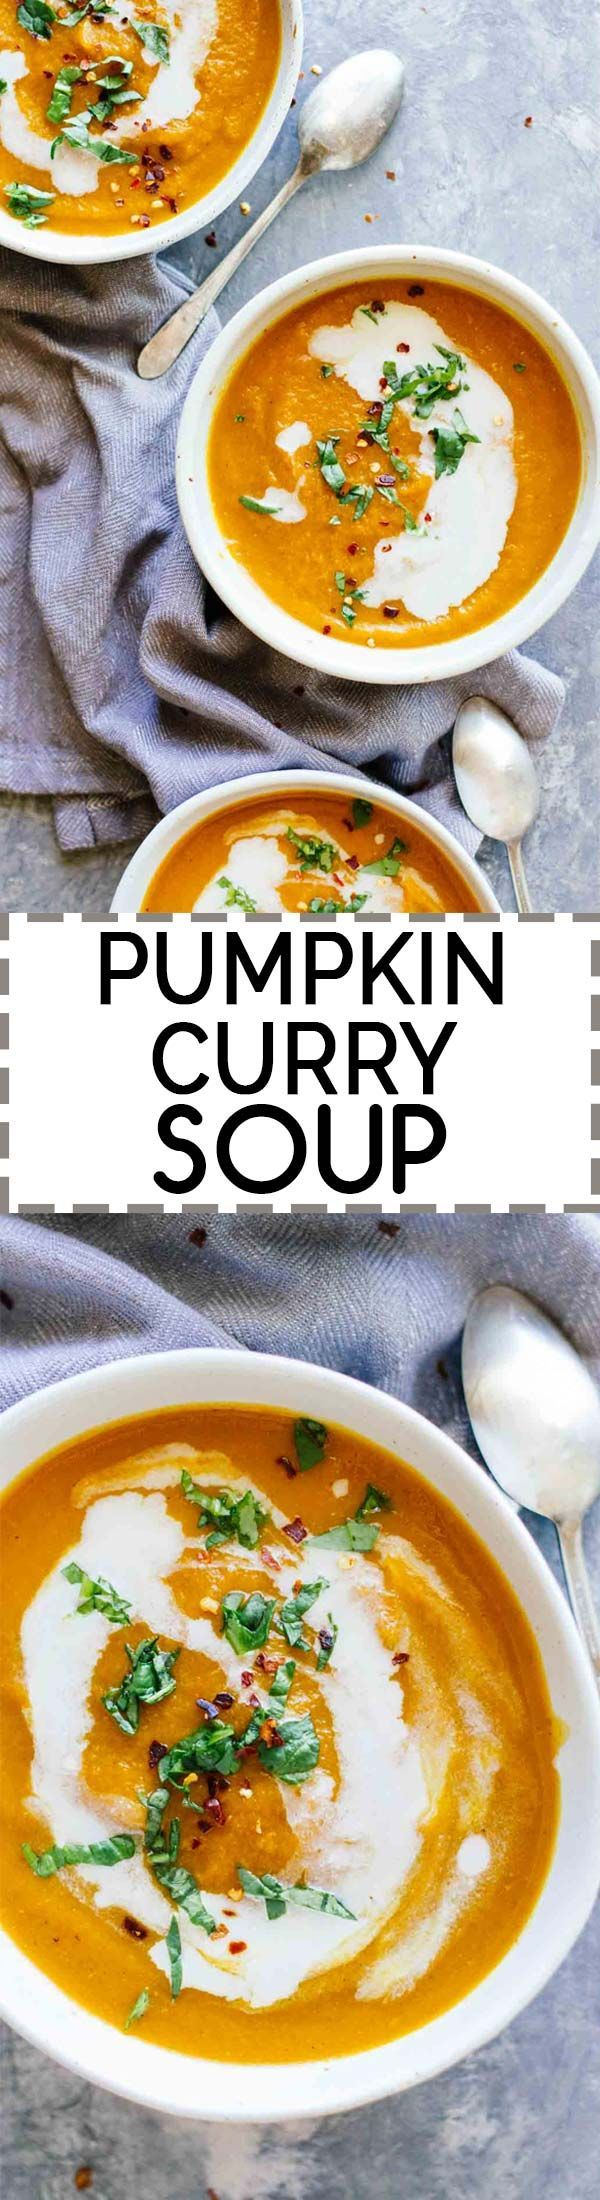 Pumpkin Curry Soup! Vegan, vegetarian, gluten-free, and under 30 minutes. Feeling all the fall feels with this delicious recipe!